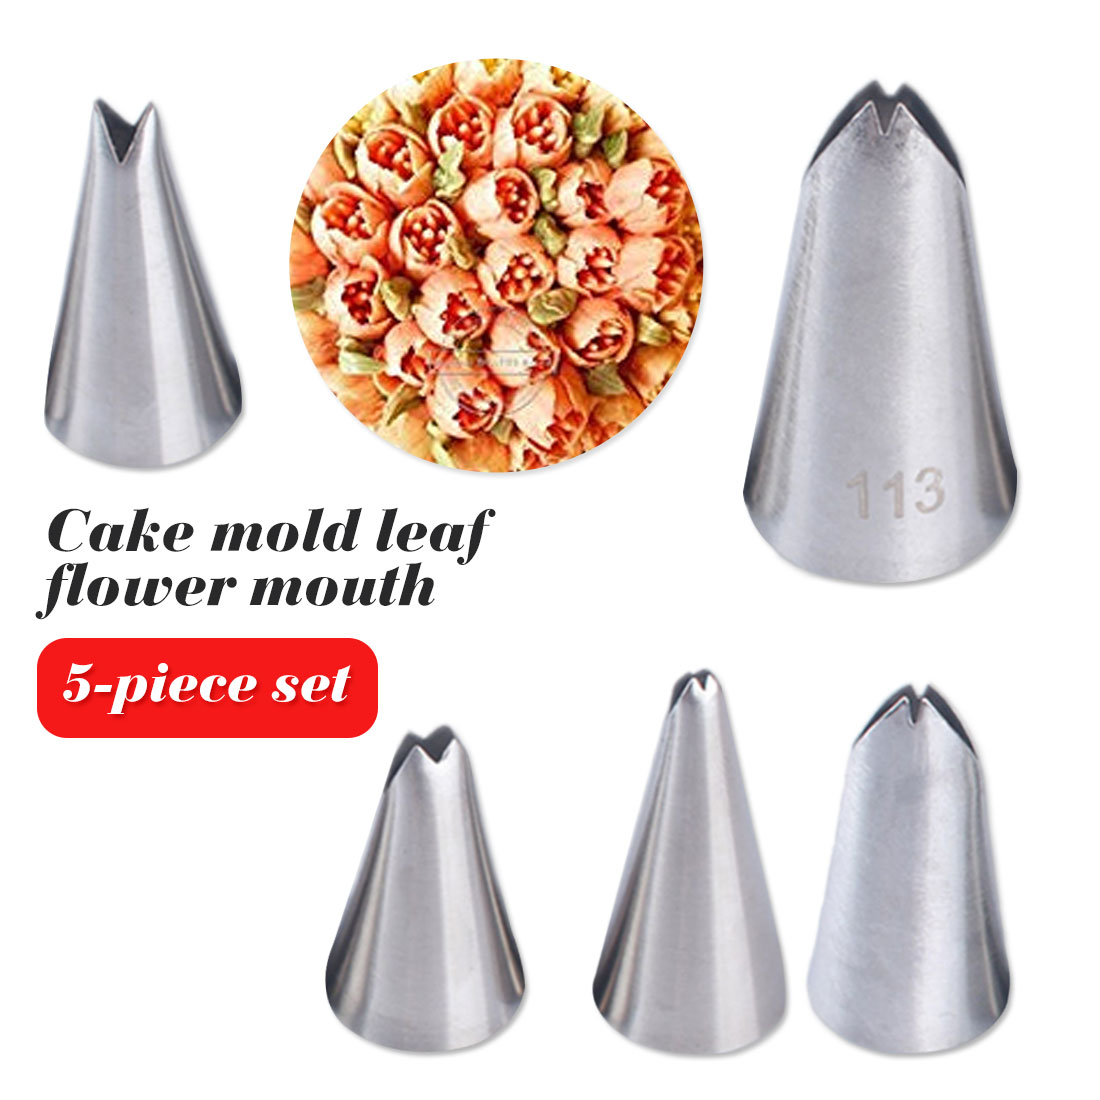 Flower Nails Stainless Steel Dessert Decorating Pastry Fondant Tools Leaves Nozzles Icing Piping Tips cake decorators 5Pcs in Dessert Decorators from Home Garden